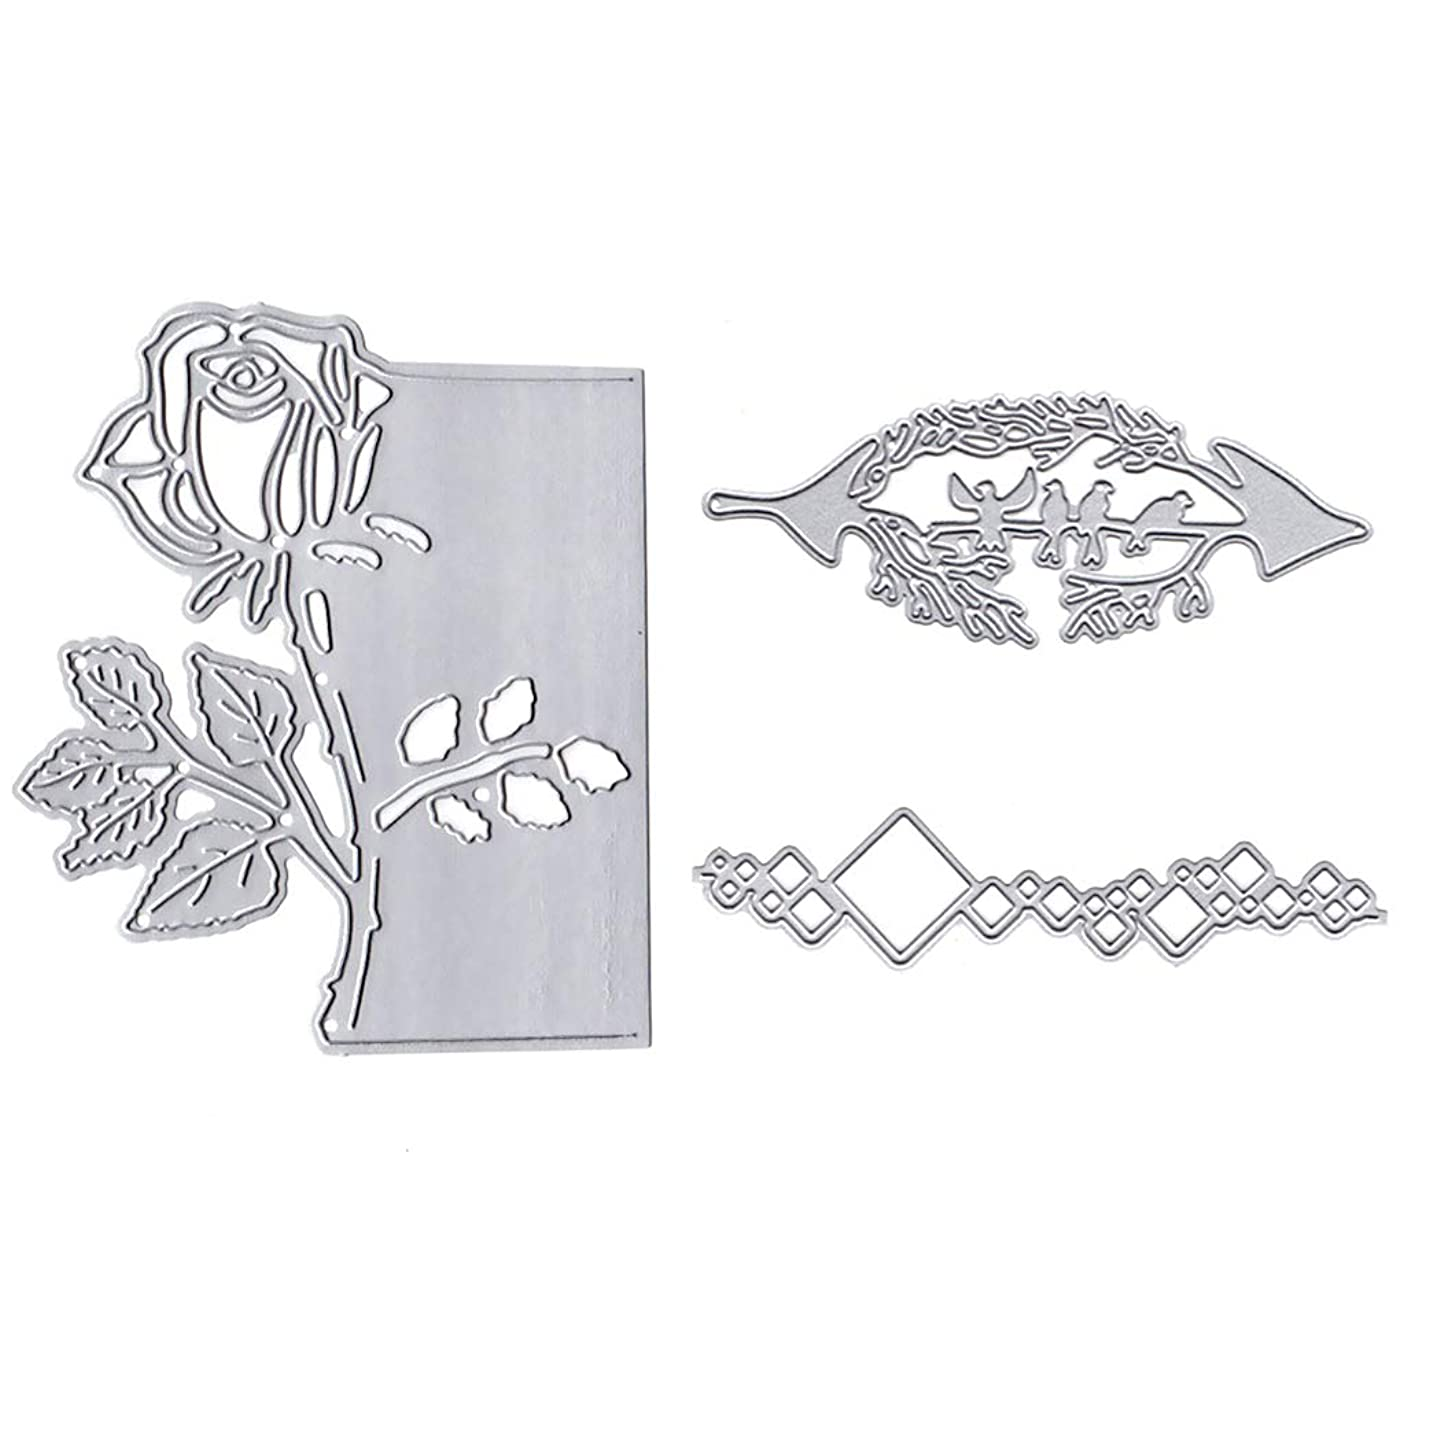 iSuperb Cutting Dies Stencil for Scrapbooking Embossing Making Paper Card Crafts,Metal Mold for DIY Photo Album Creative Tools (Garden)